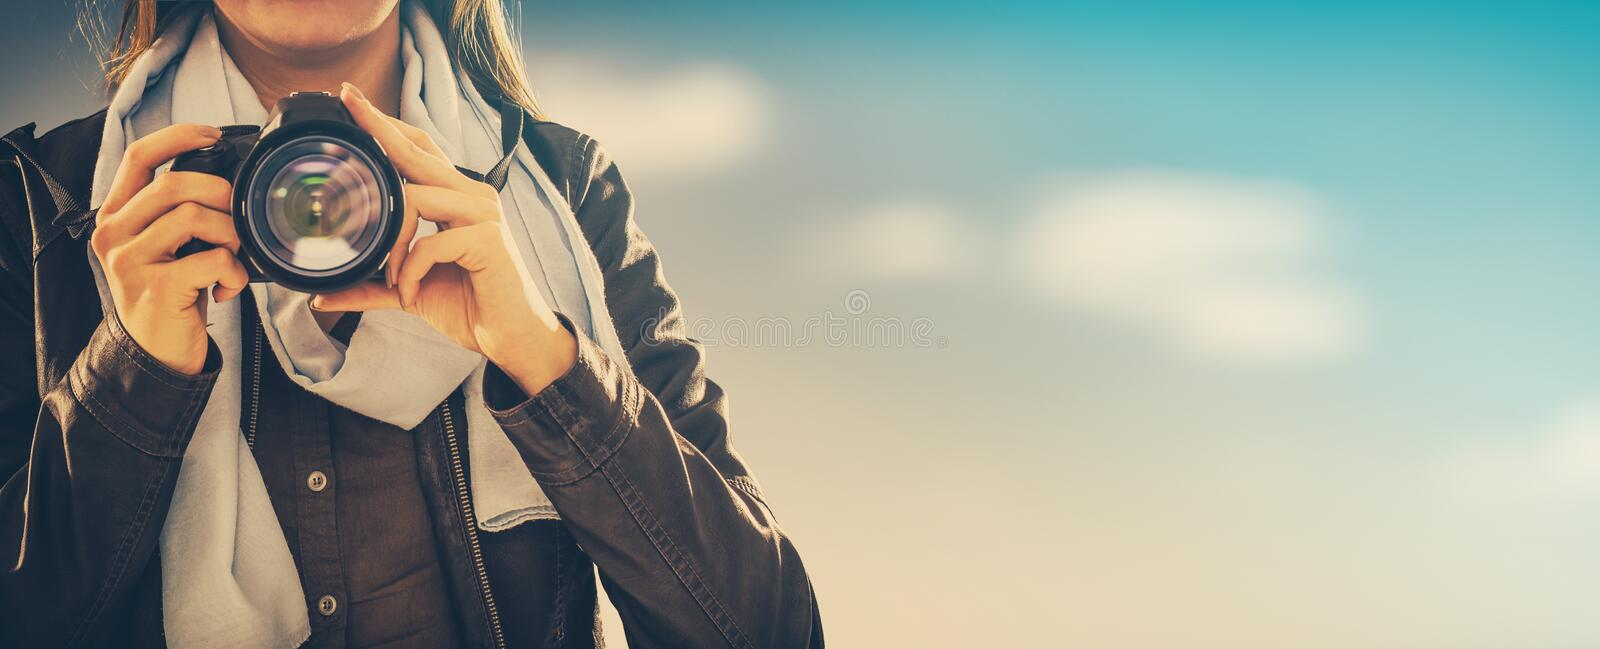 Portrait of a photographer covering her face with camera. royalty free stock image